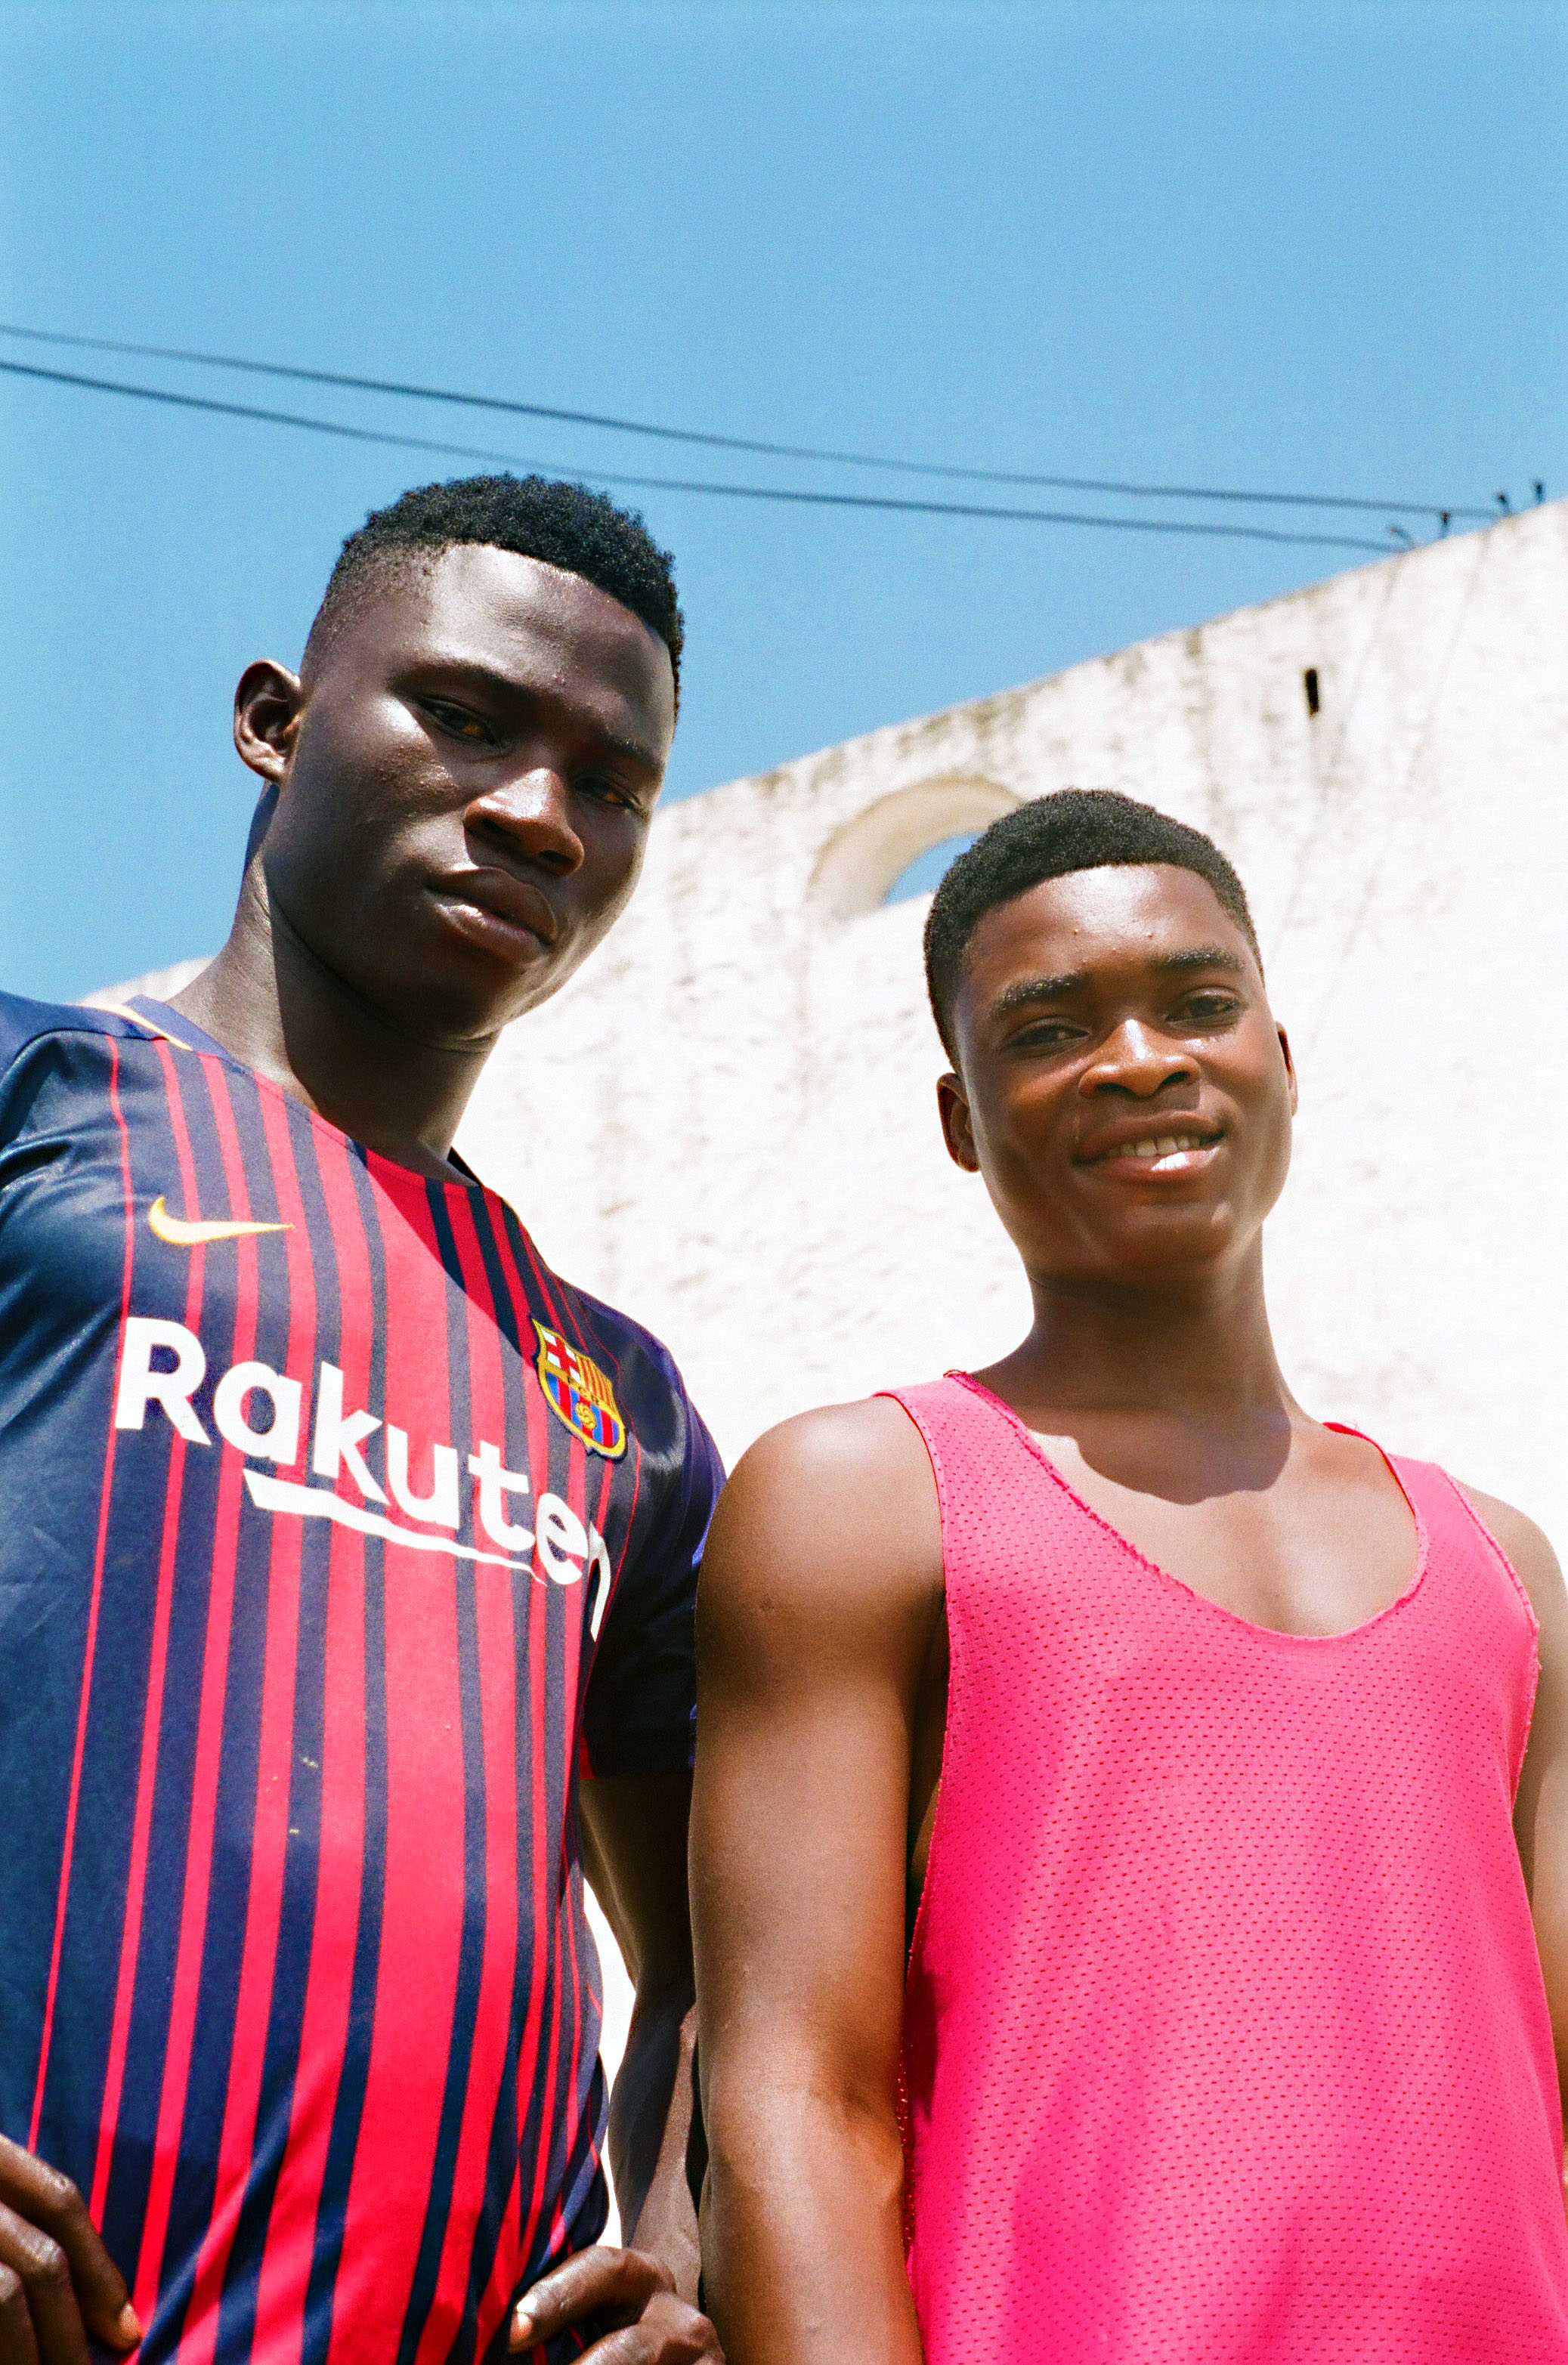 These two young men standing outside the castle are a reminder of the future Ghana